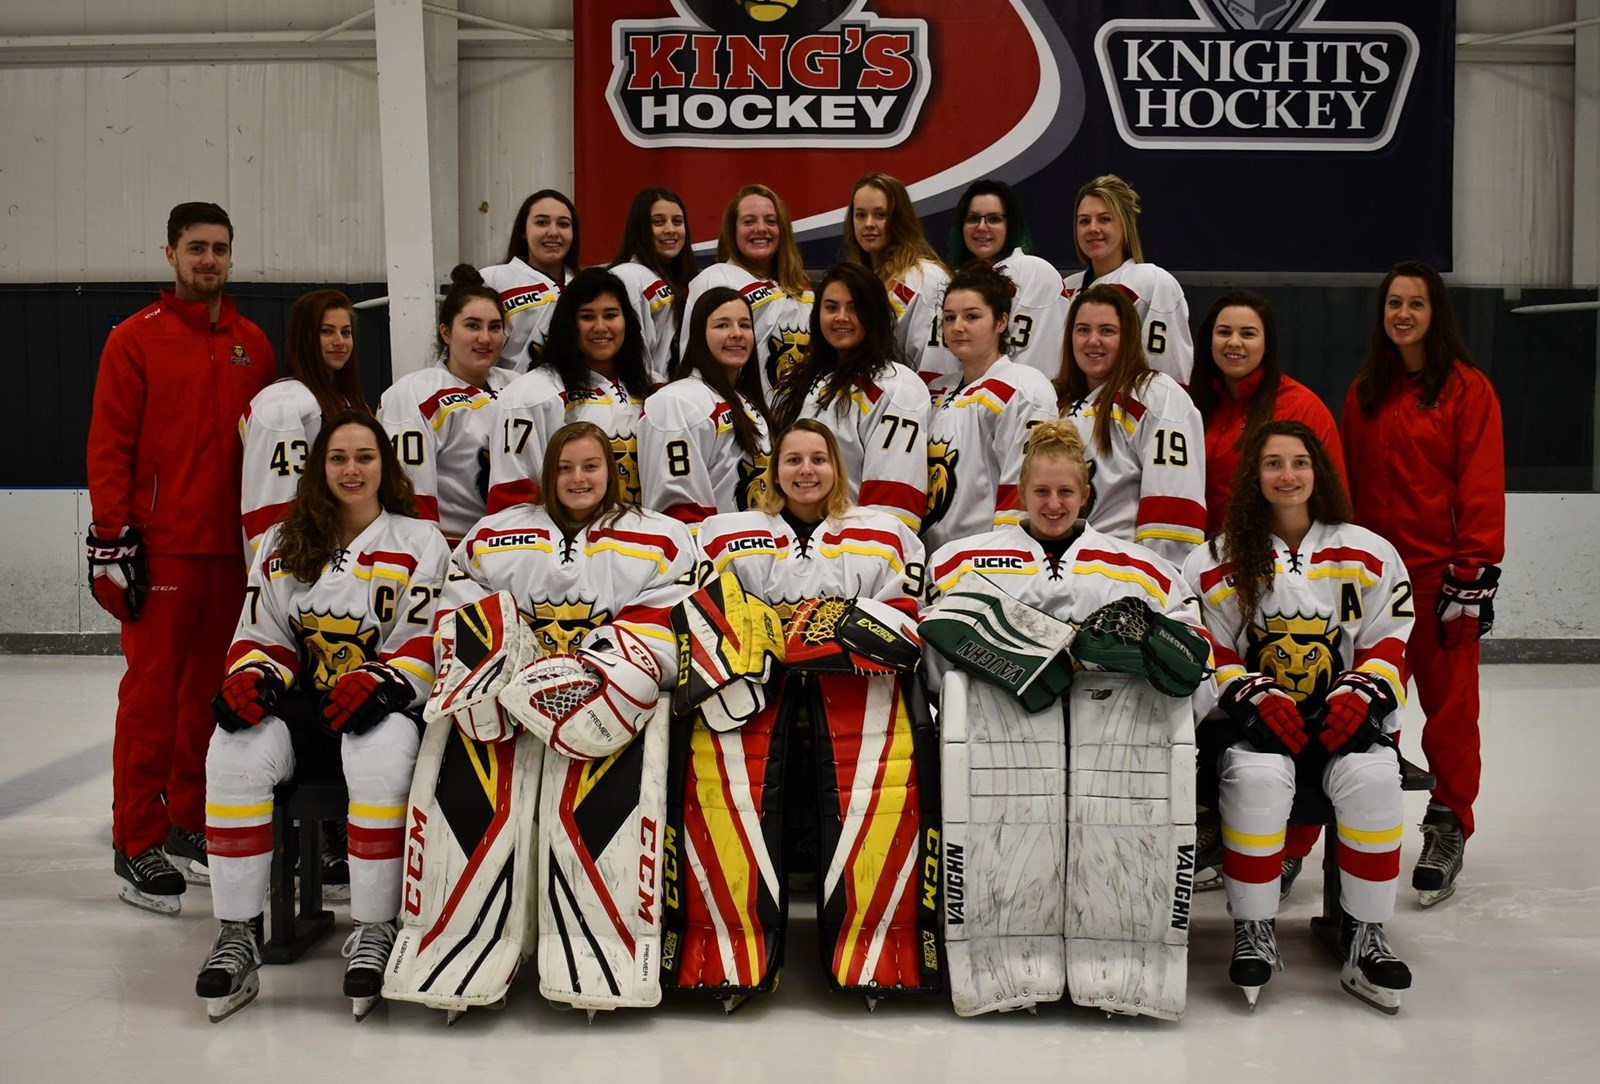 079dcfdcfd3 ... 2017-18 King's College Lady Monarchs Women's Ice Hockey Roster